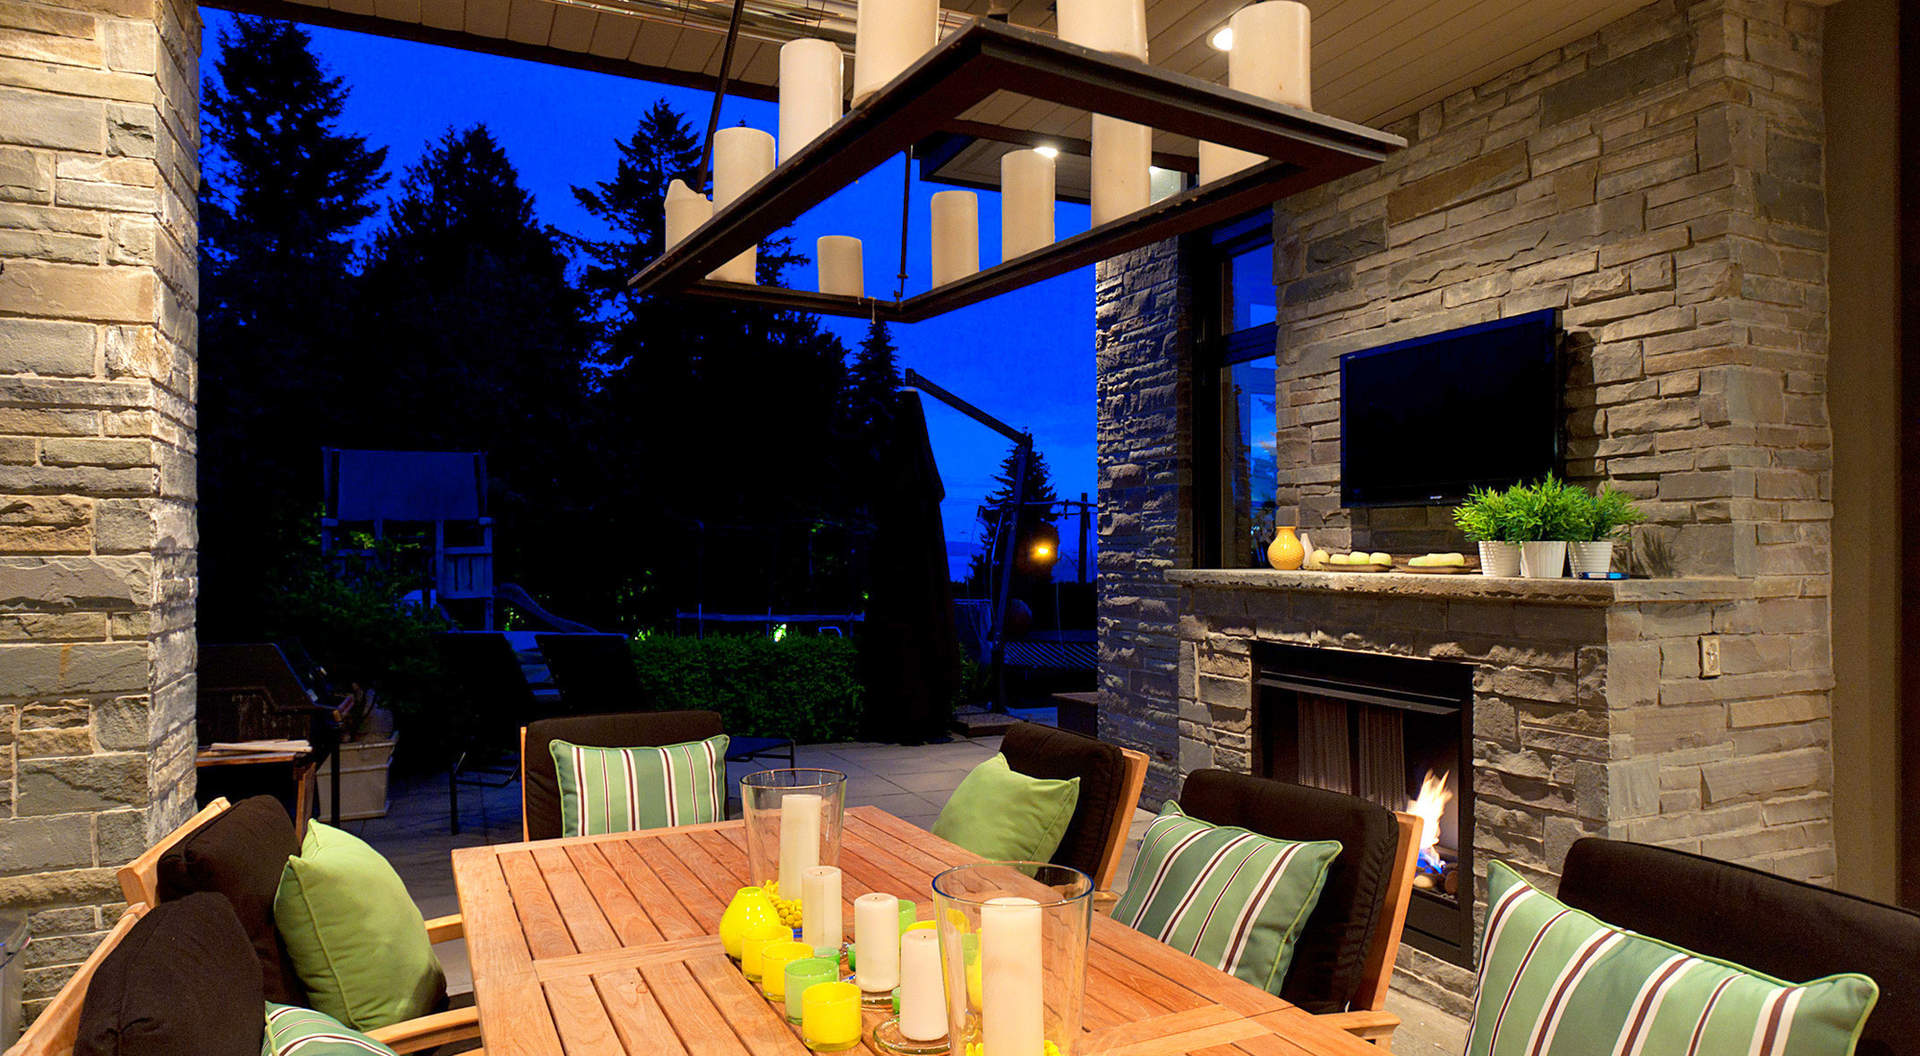 Covered Outdoor Living Area with BBQ Center and Fireplace